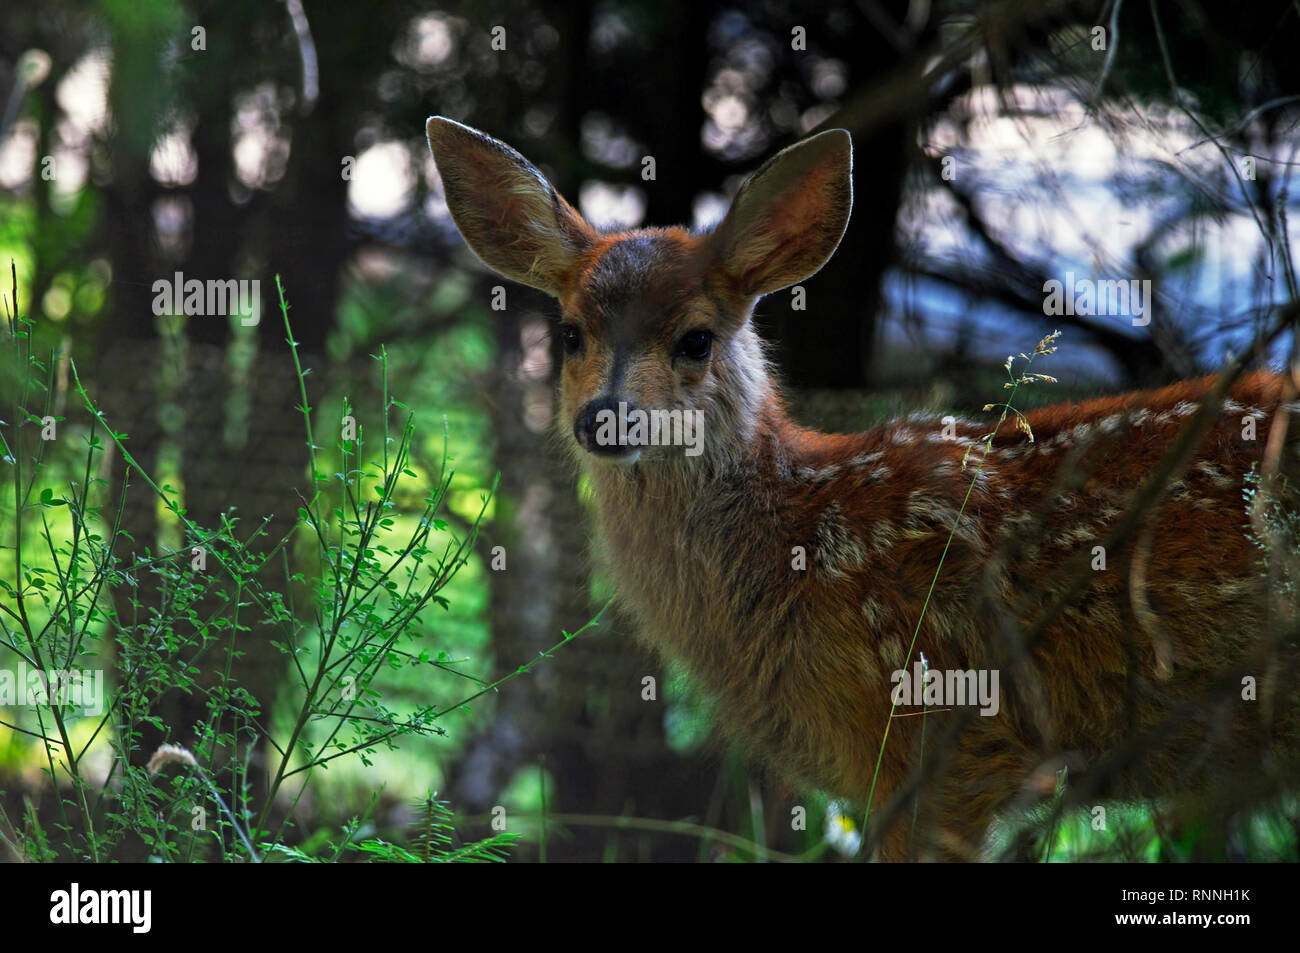 A   Columbian black-tailed deer fawn (Odocoileus hemionus  columbianus) still showing baby spots in the shadows of some nearby trees. - Stock Image